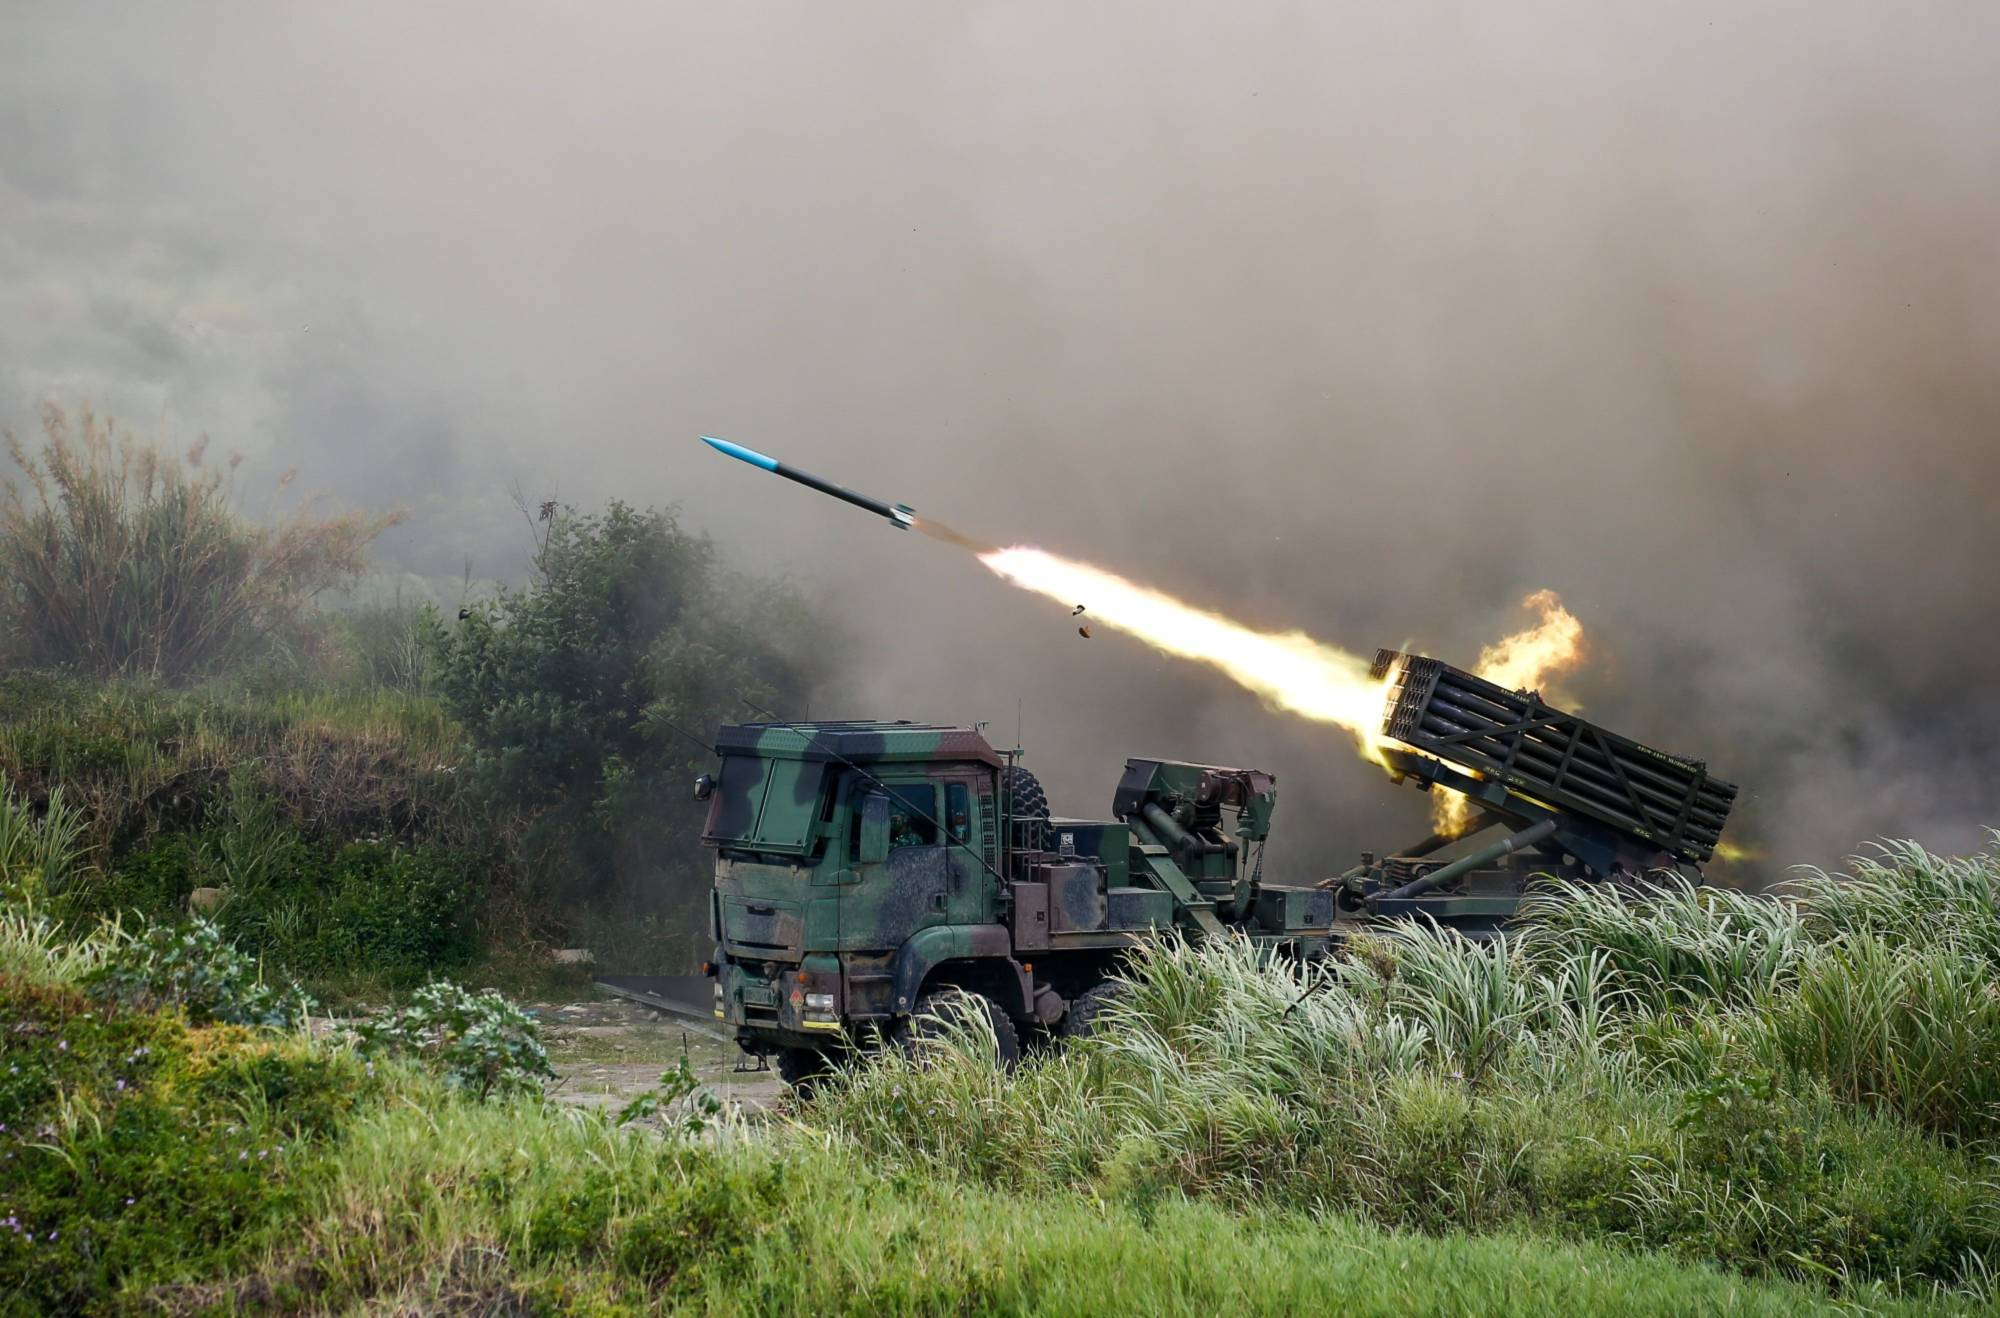 A Thunderbolt 2000 multiple rocket launcher fires munitions during a military exercise in Taichung, Taiwan, in July. | BLOOMBERG